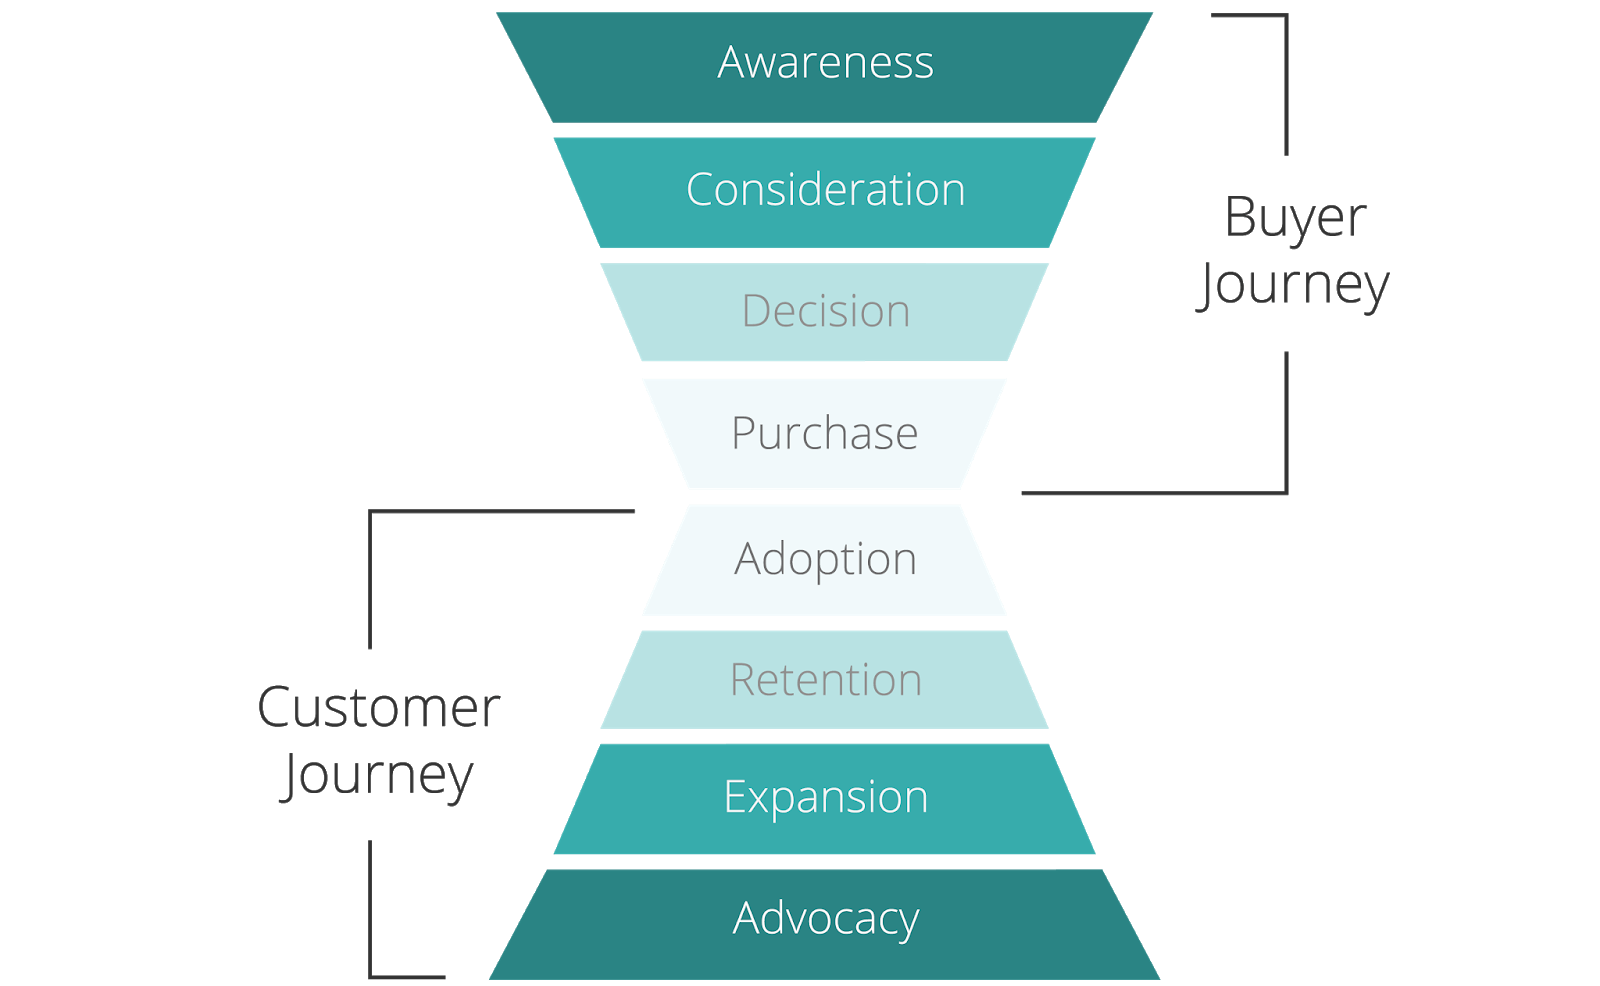 A visualization of the customer's buying journey. The steps in the funnel are Awareness, Consideration, Decision, Purchase, Adoption, Retention, Expansion, and Advocacy.